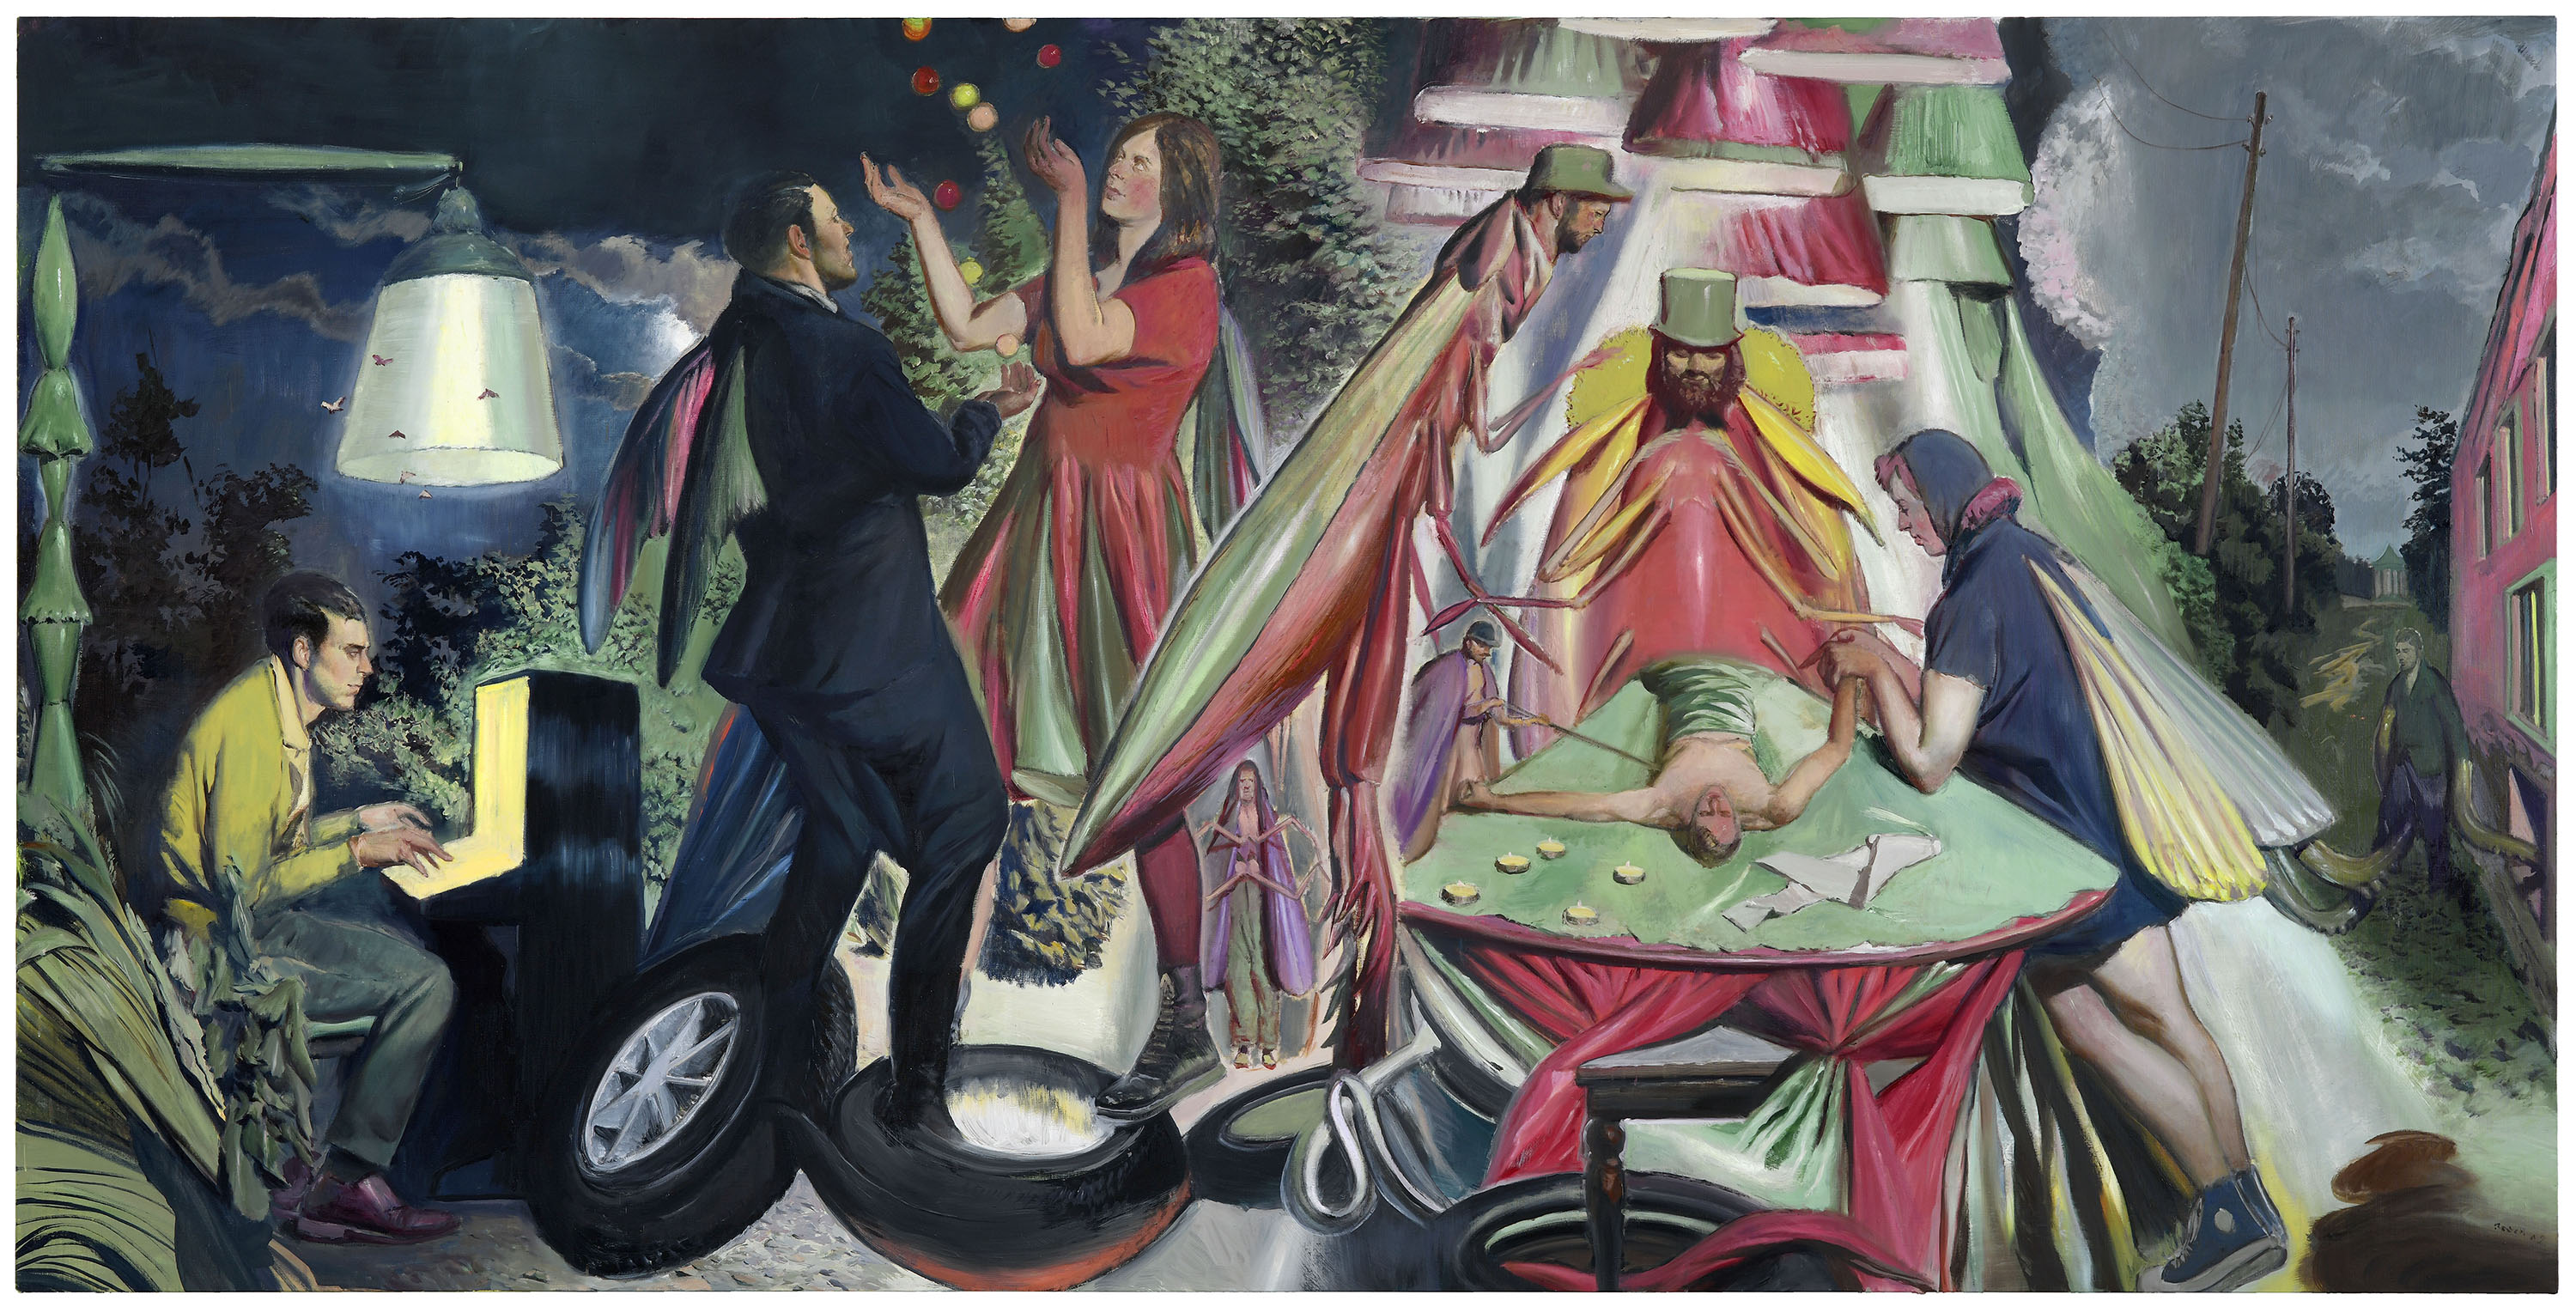 A painting by Neo Rauch, titled Die Wandlung, dated 2019.